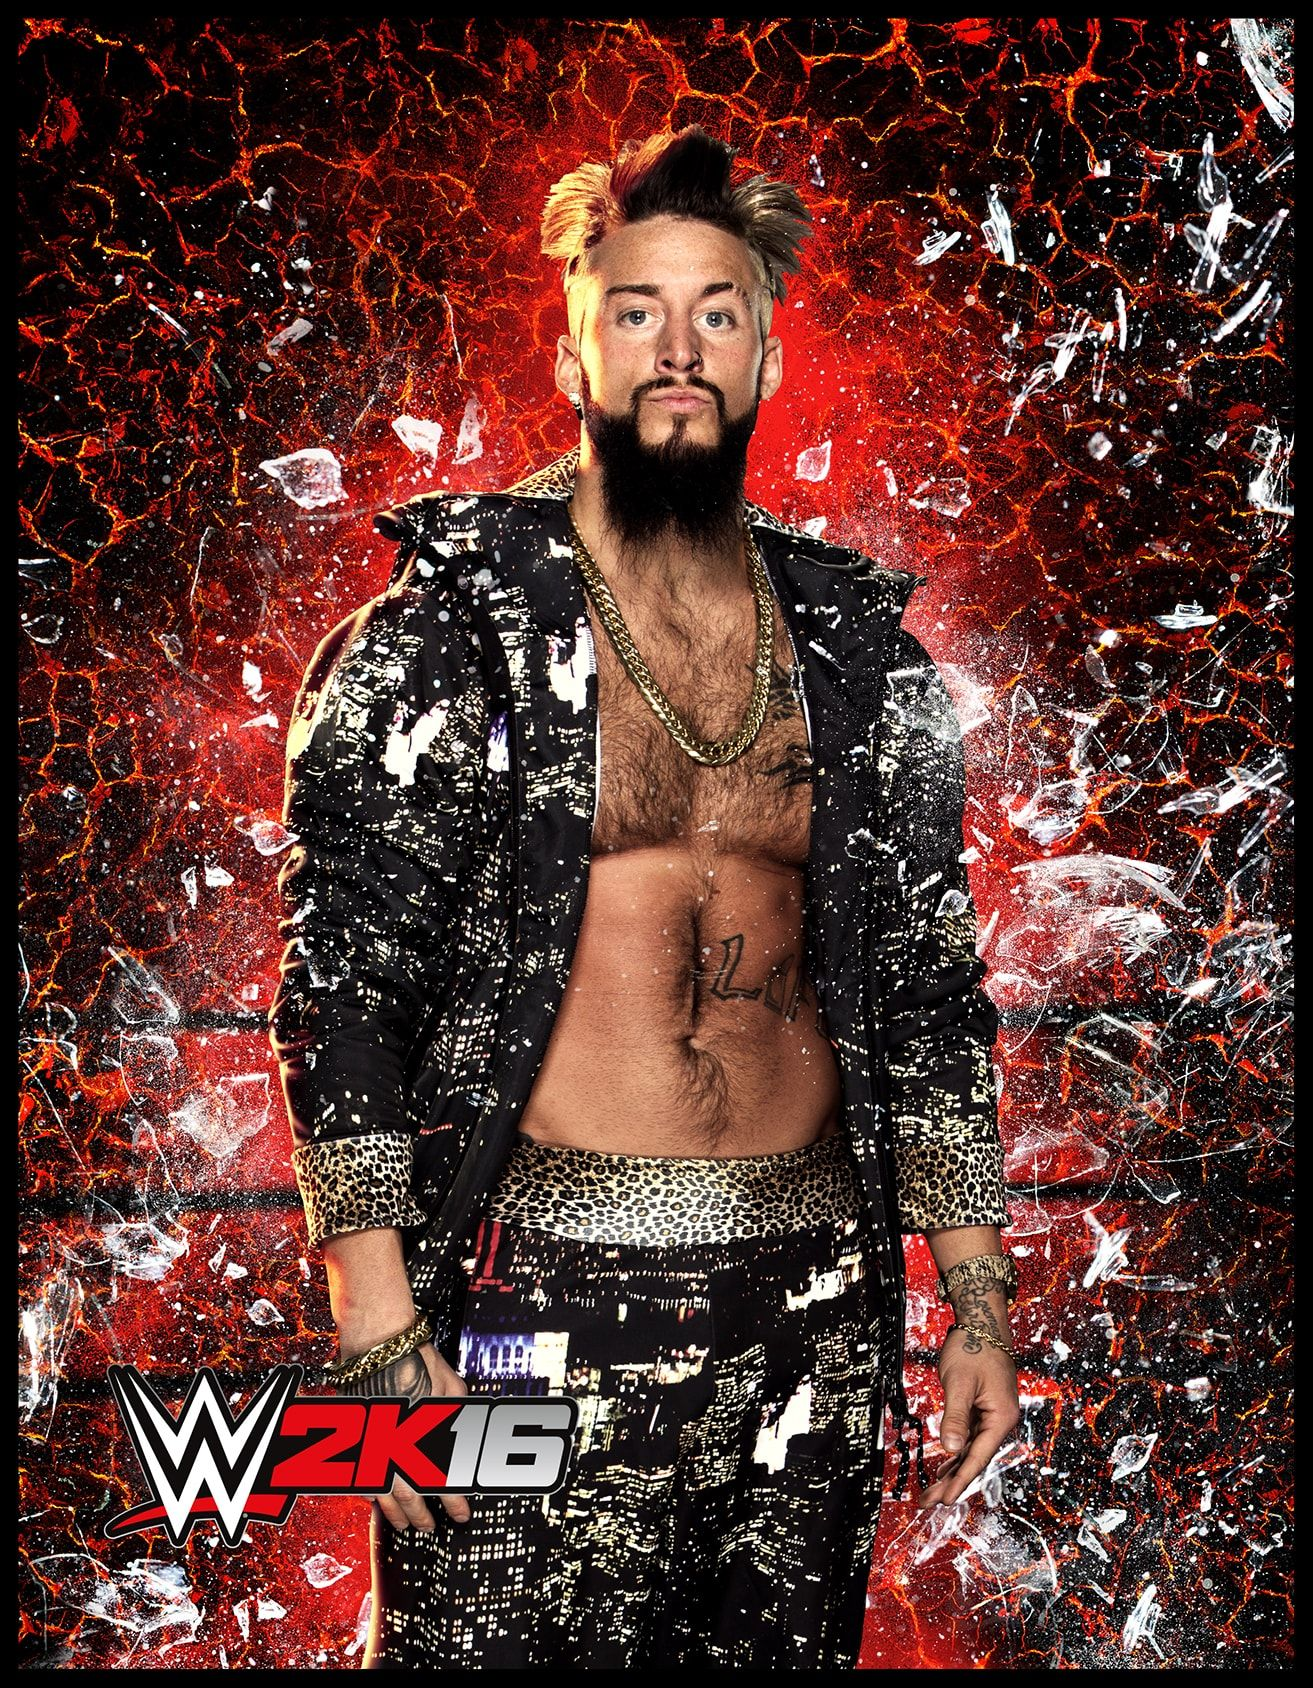 My Name Is Enzo Amore And In A Certified G